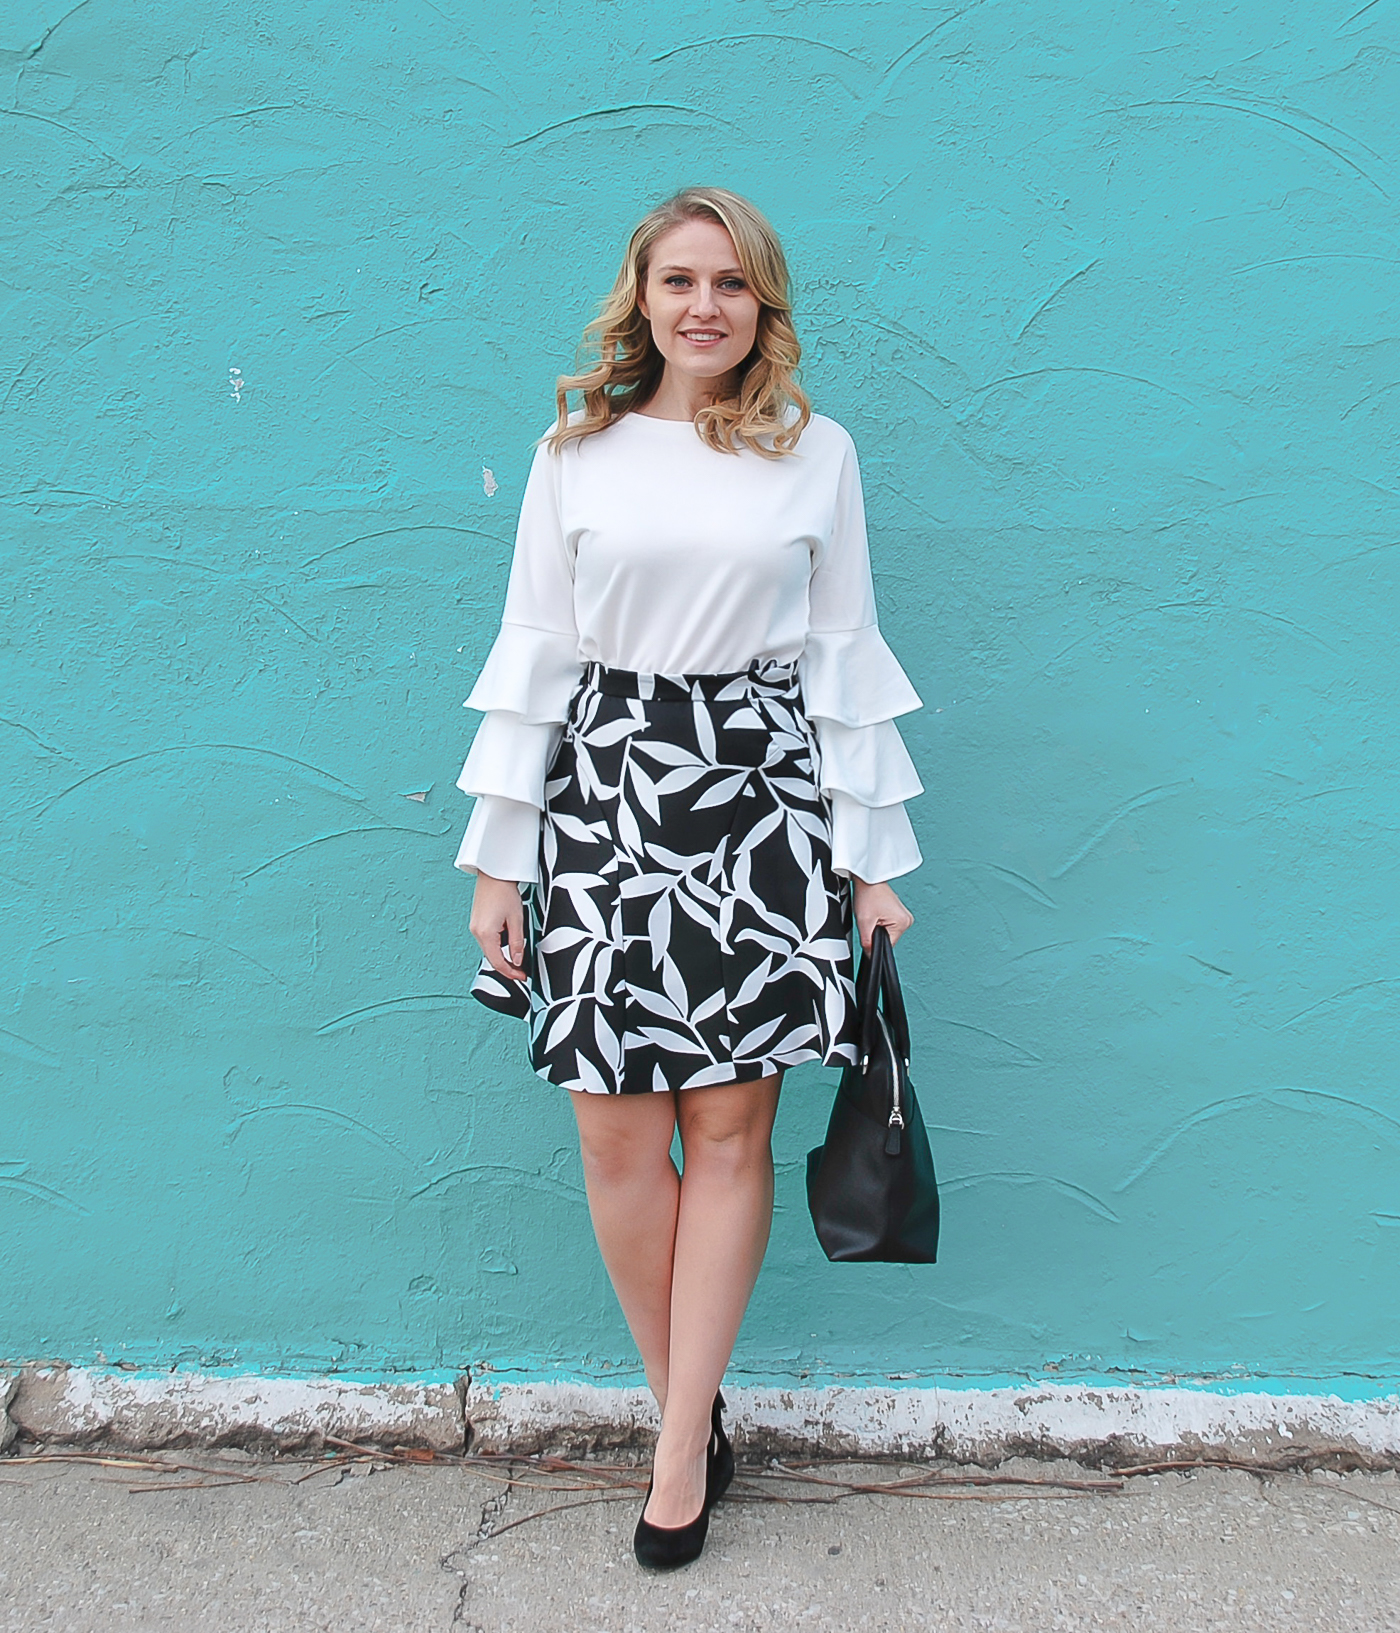 A simple black and white outfit featuring a bell sleeve blouse from SheIn